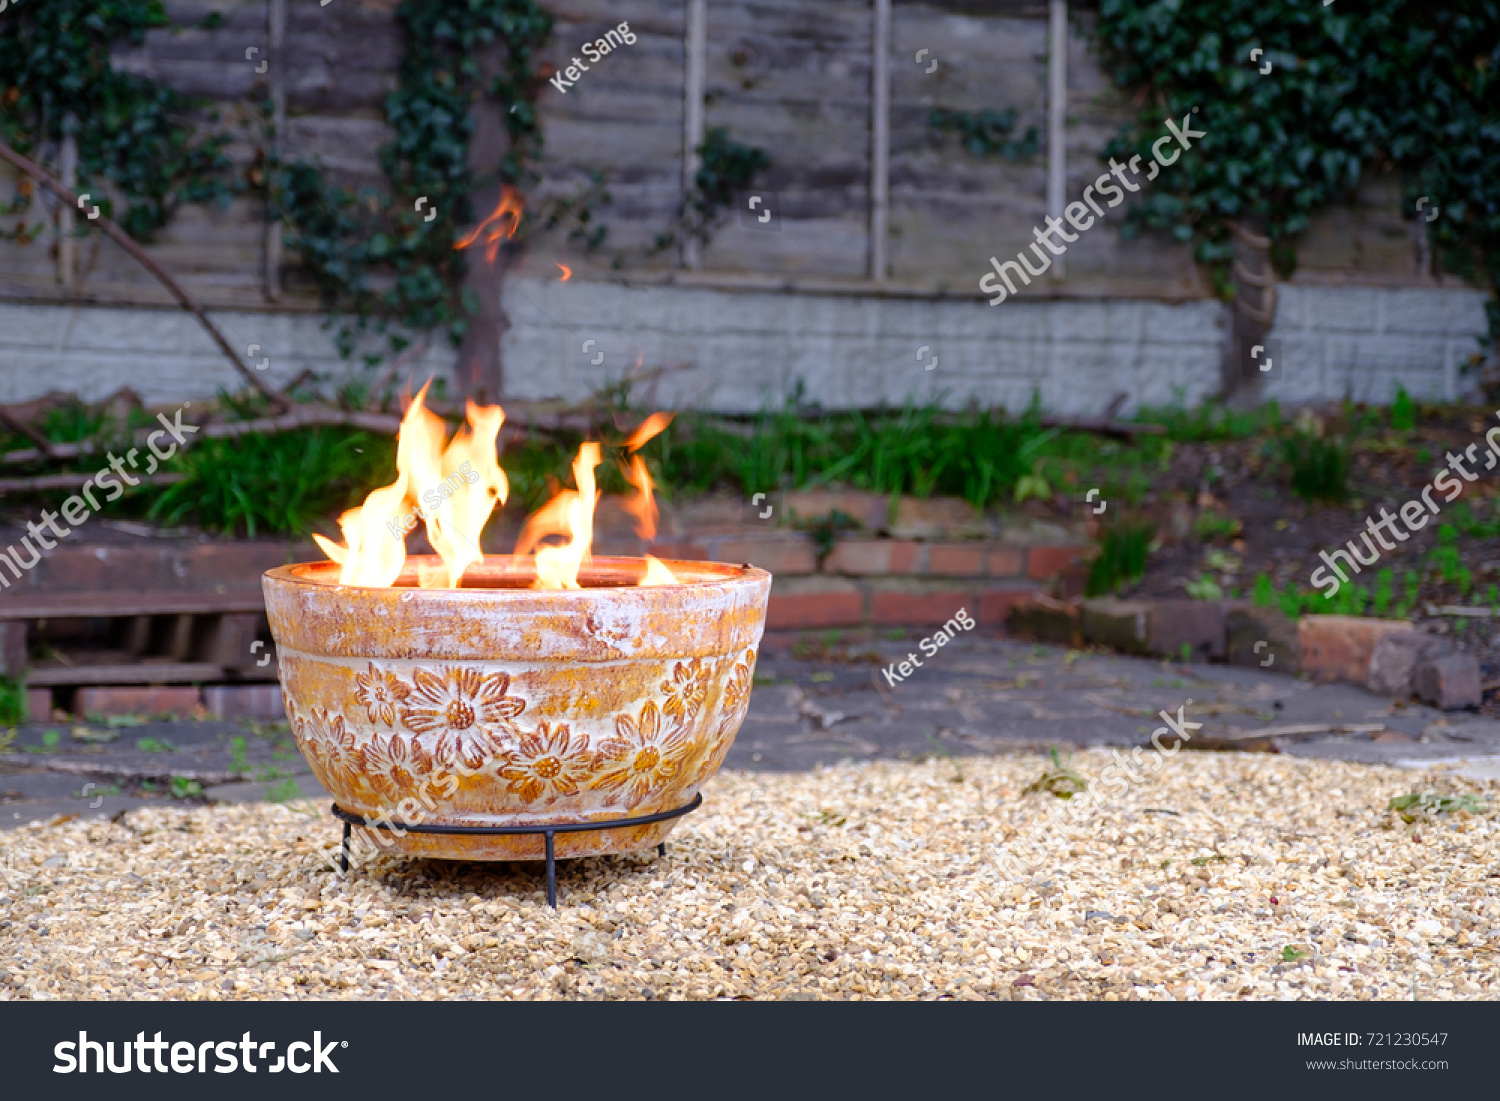 clay outdoor fire pit back garden stock photo 721230547 shutterstock